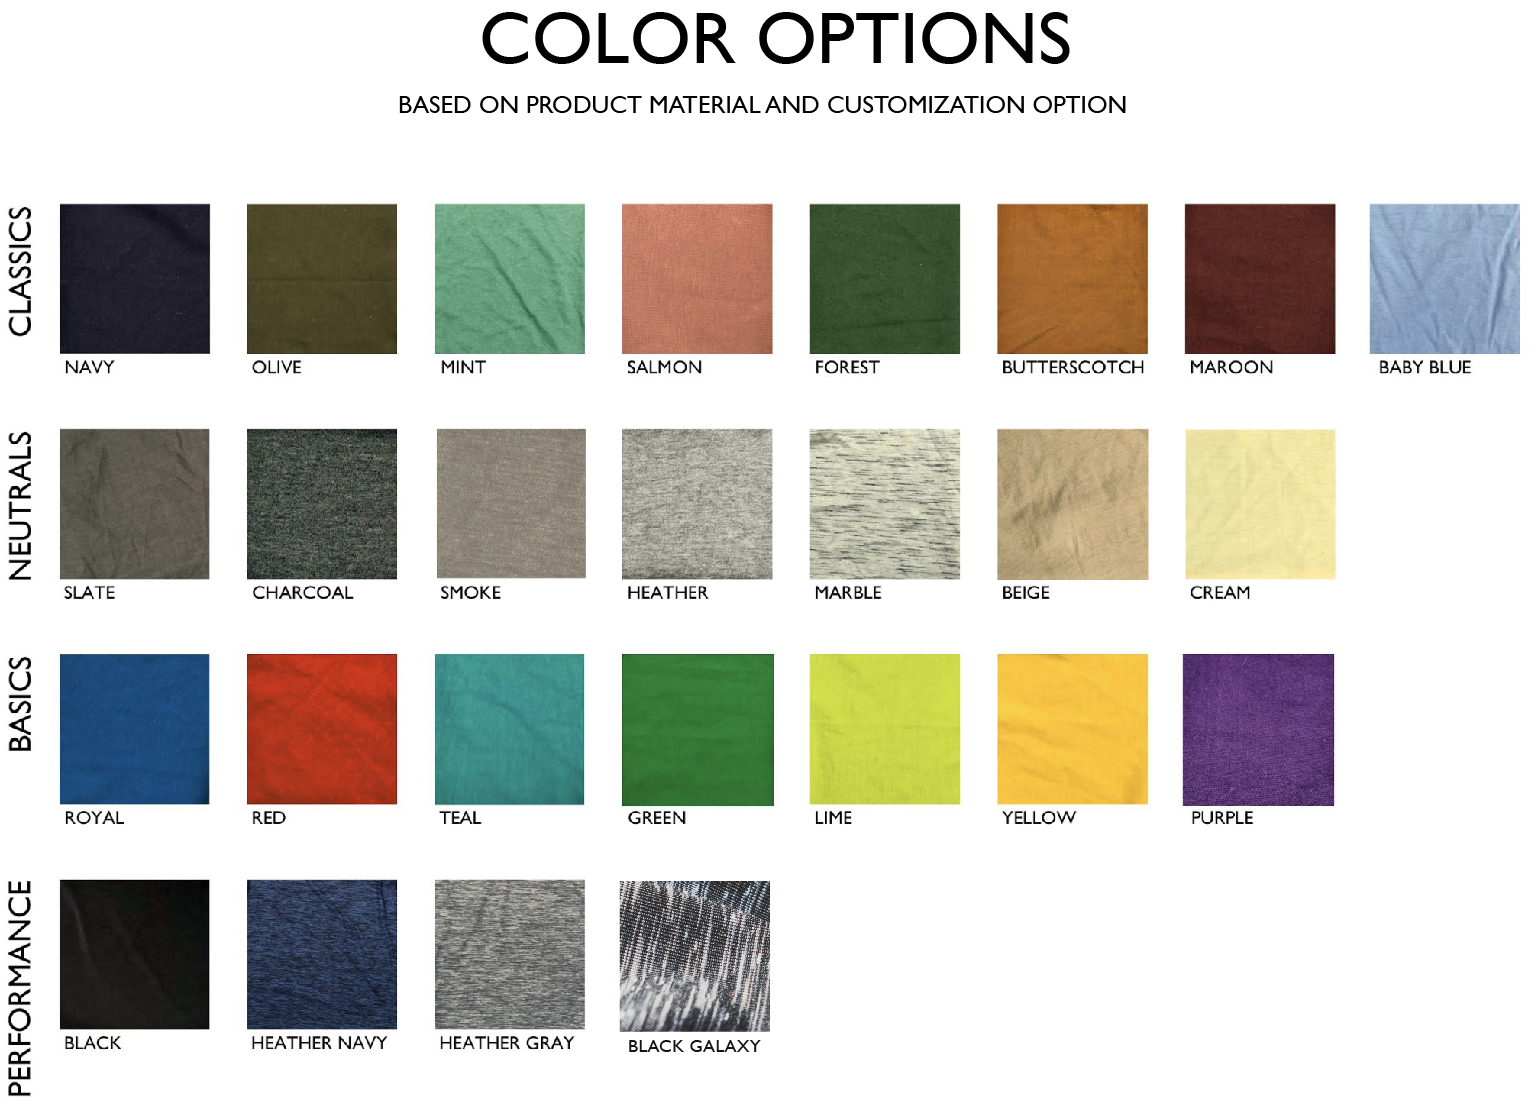 CATALOG COLOR OPTIONS.jpg